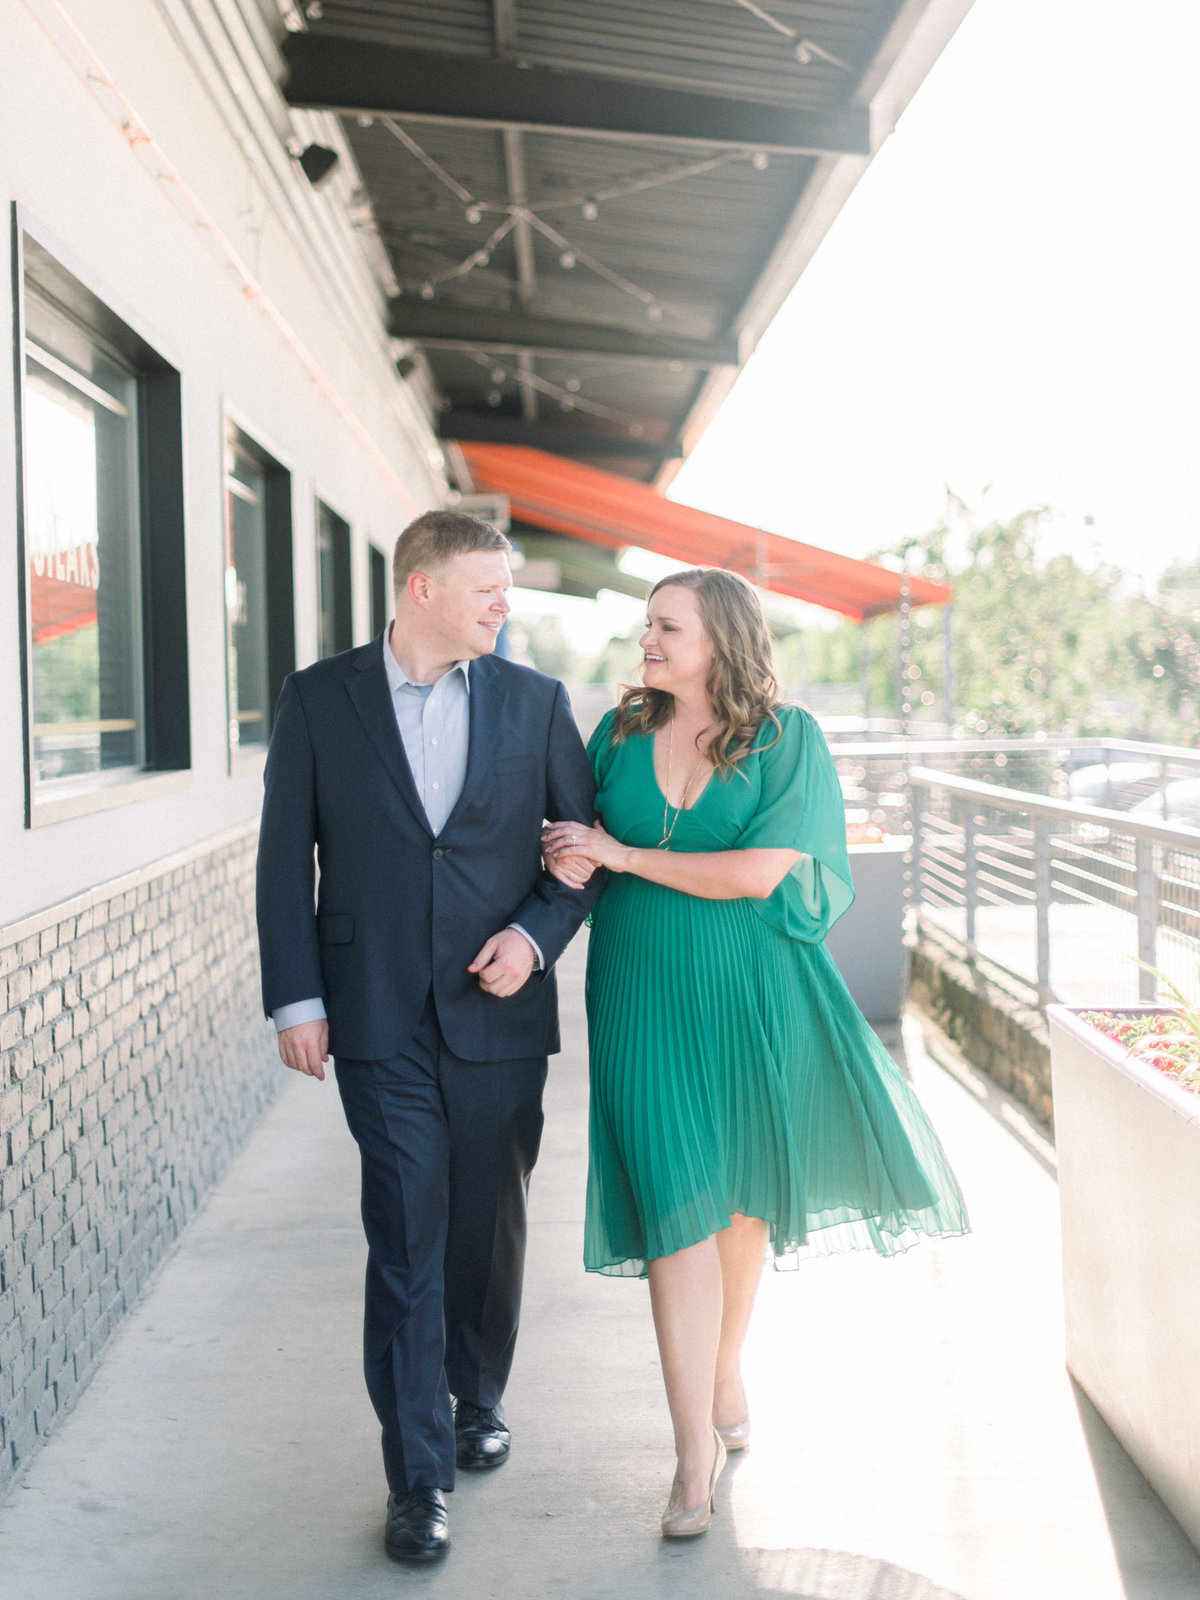 Courtney Hanson Photography - Downtown Dallas Engagement Session-7146